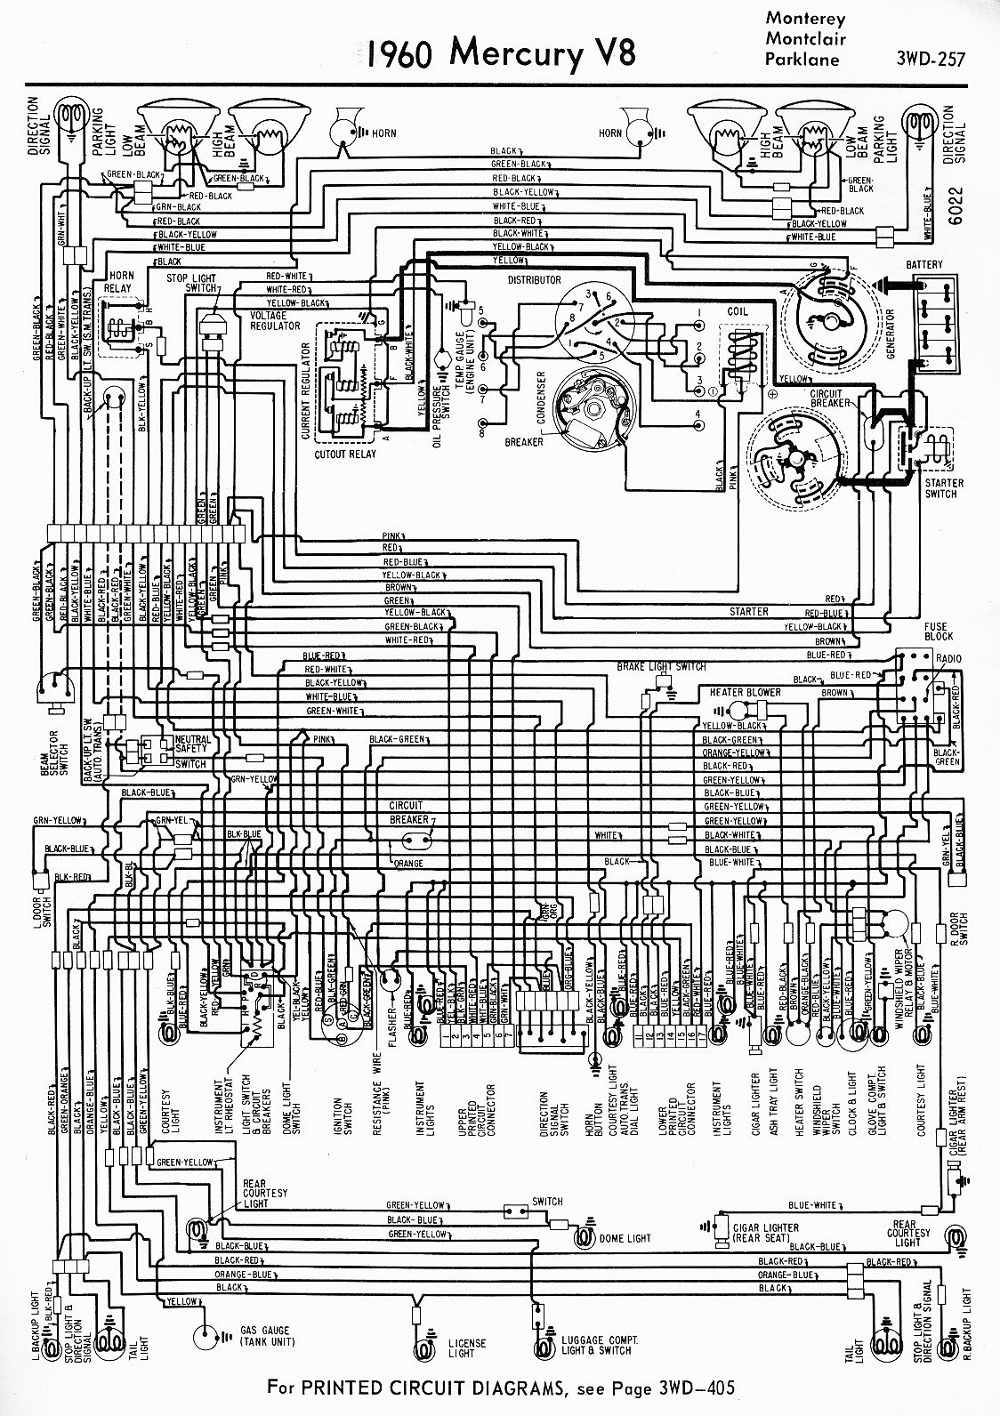 Blue Bus Wiring Free Diagram For You Busbar Bluebird Schematics Site Rh 17 7 18 Lm Baudienstleistungen De Bar